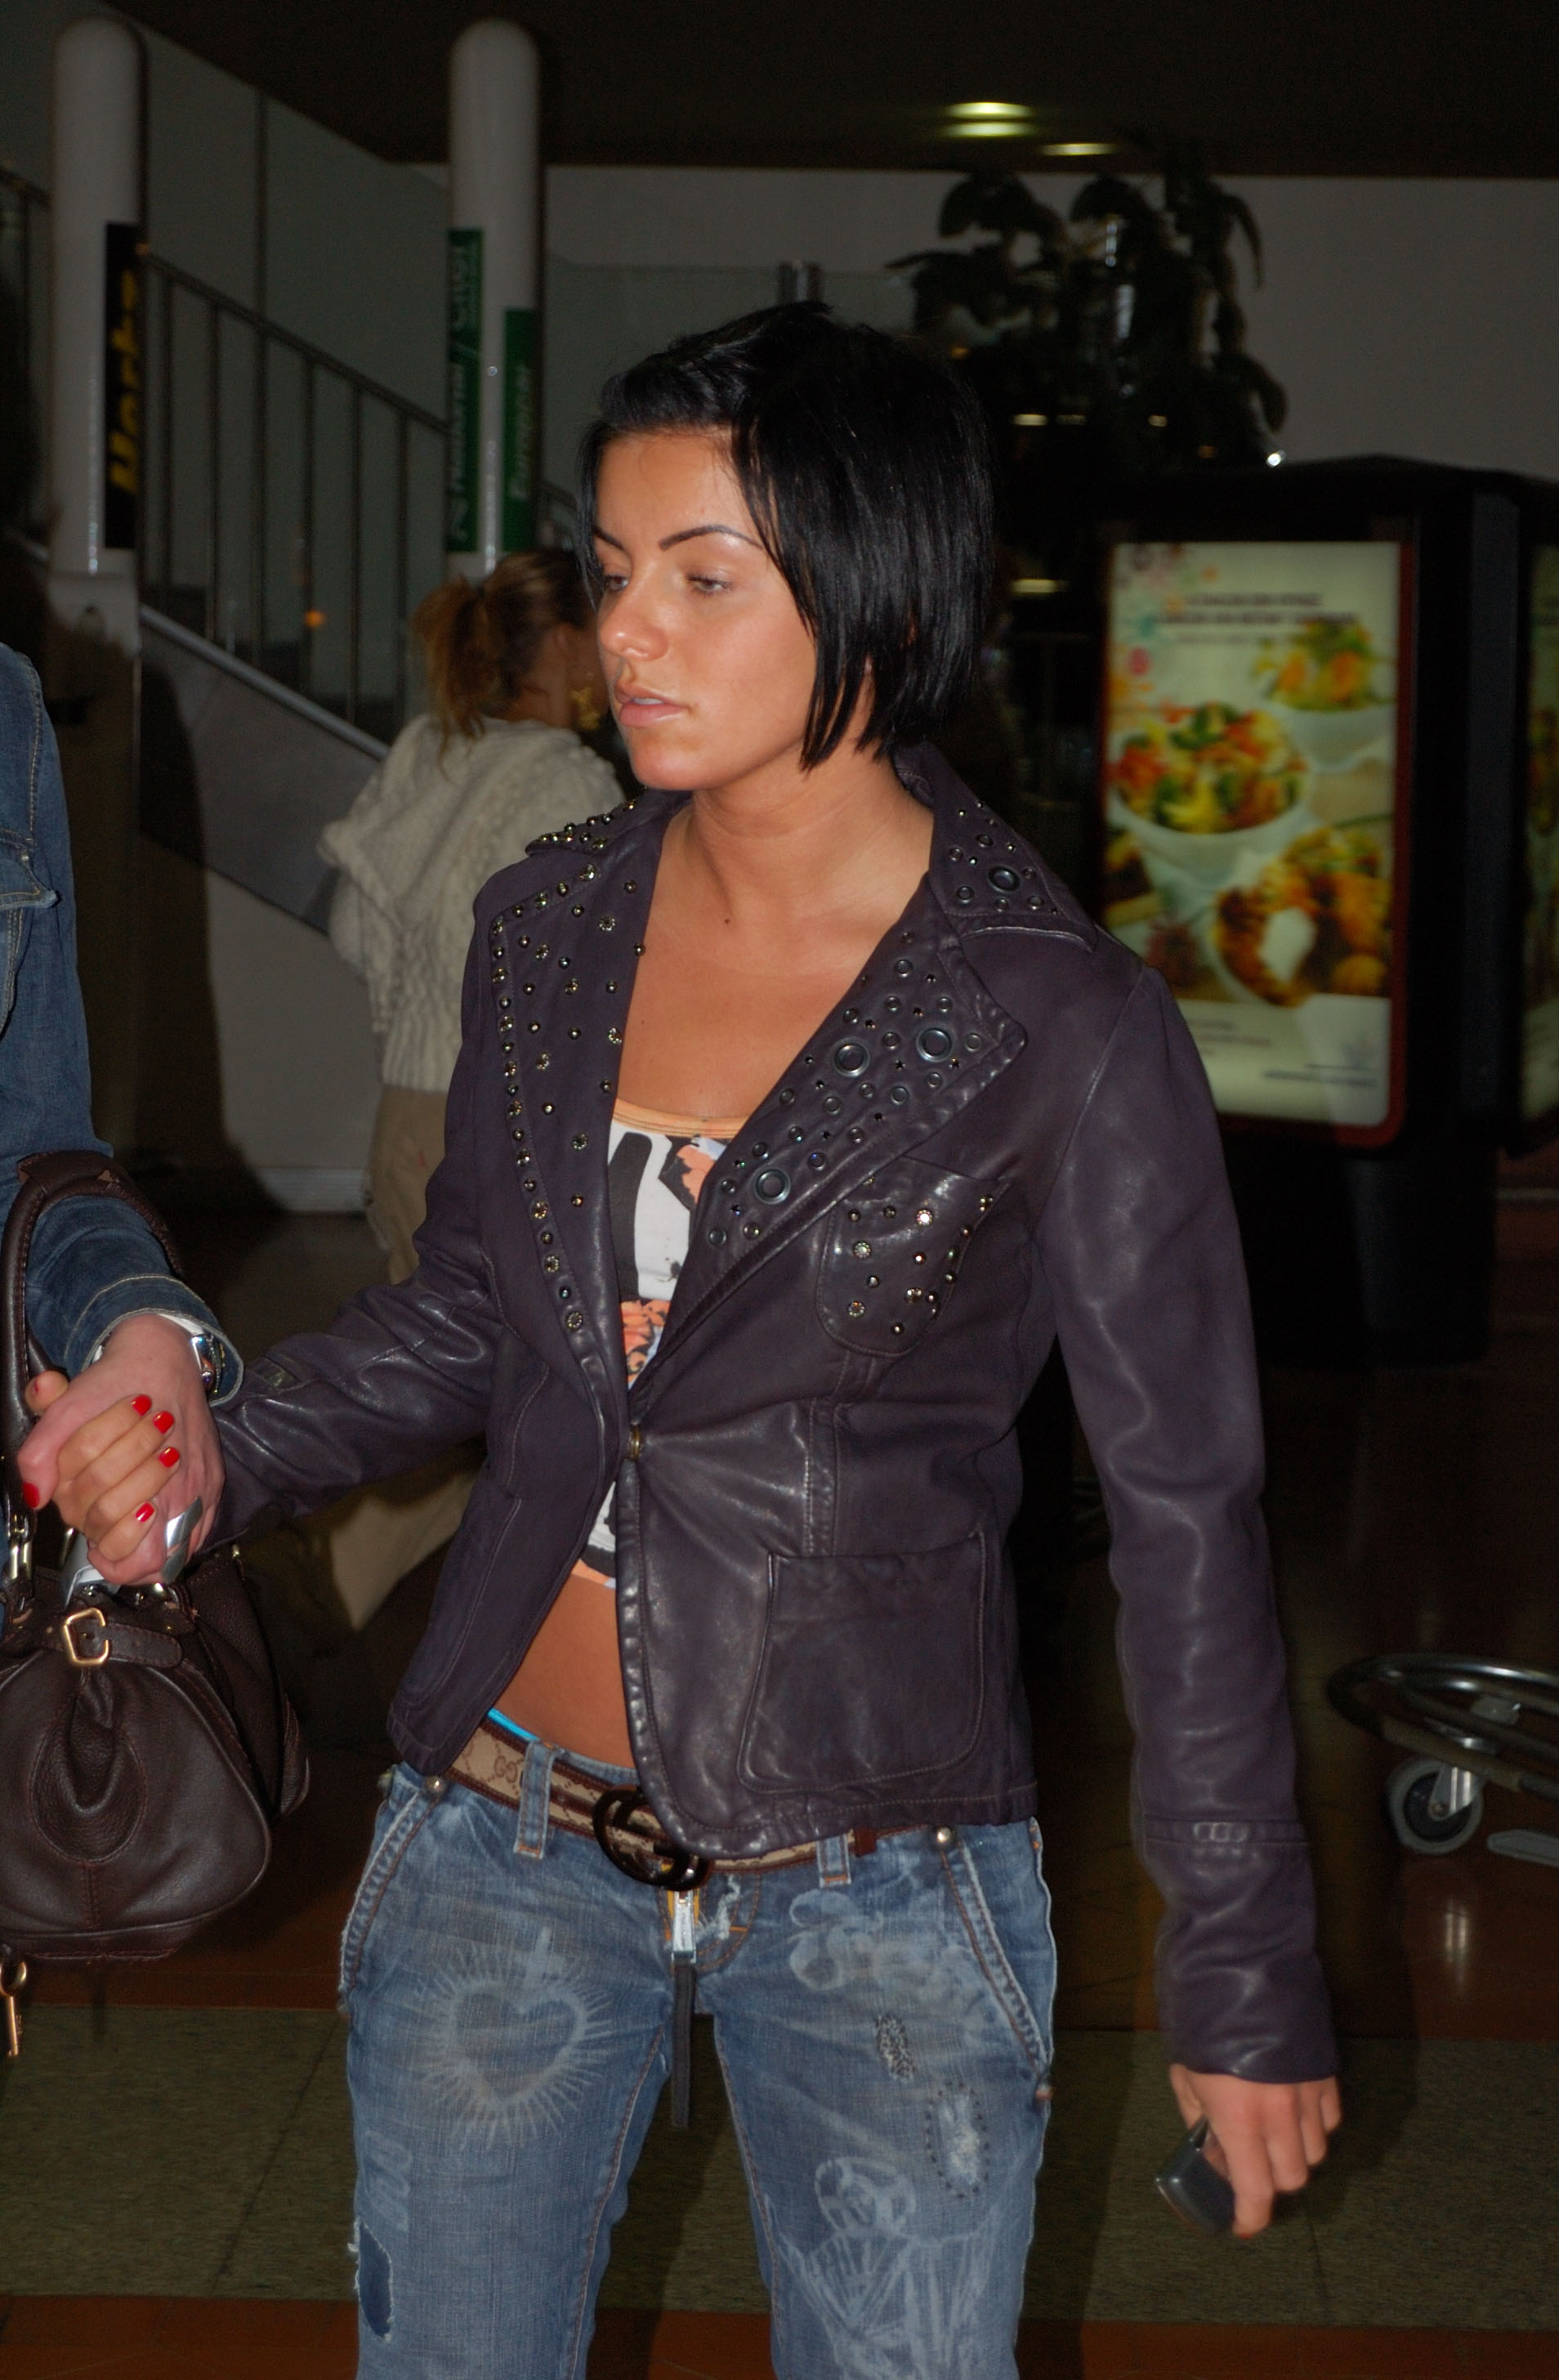 ТАТУ - Tatu Arrive in Paris 22.10.2006